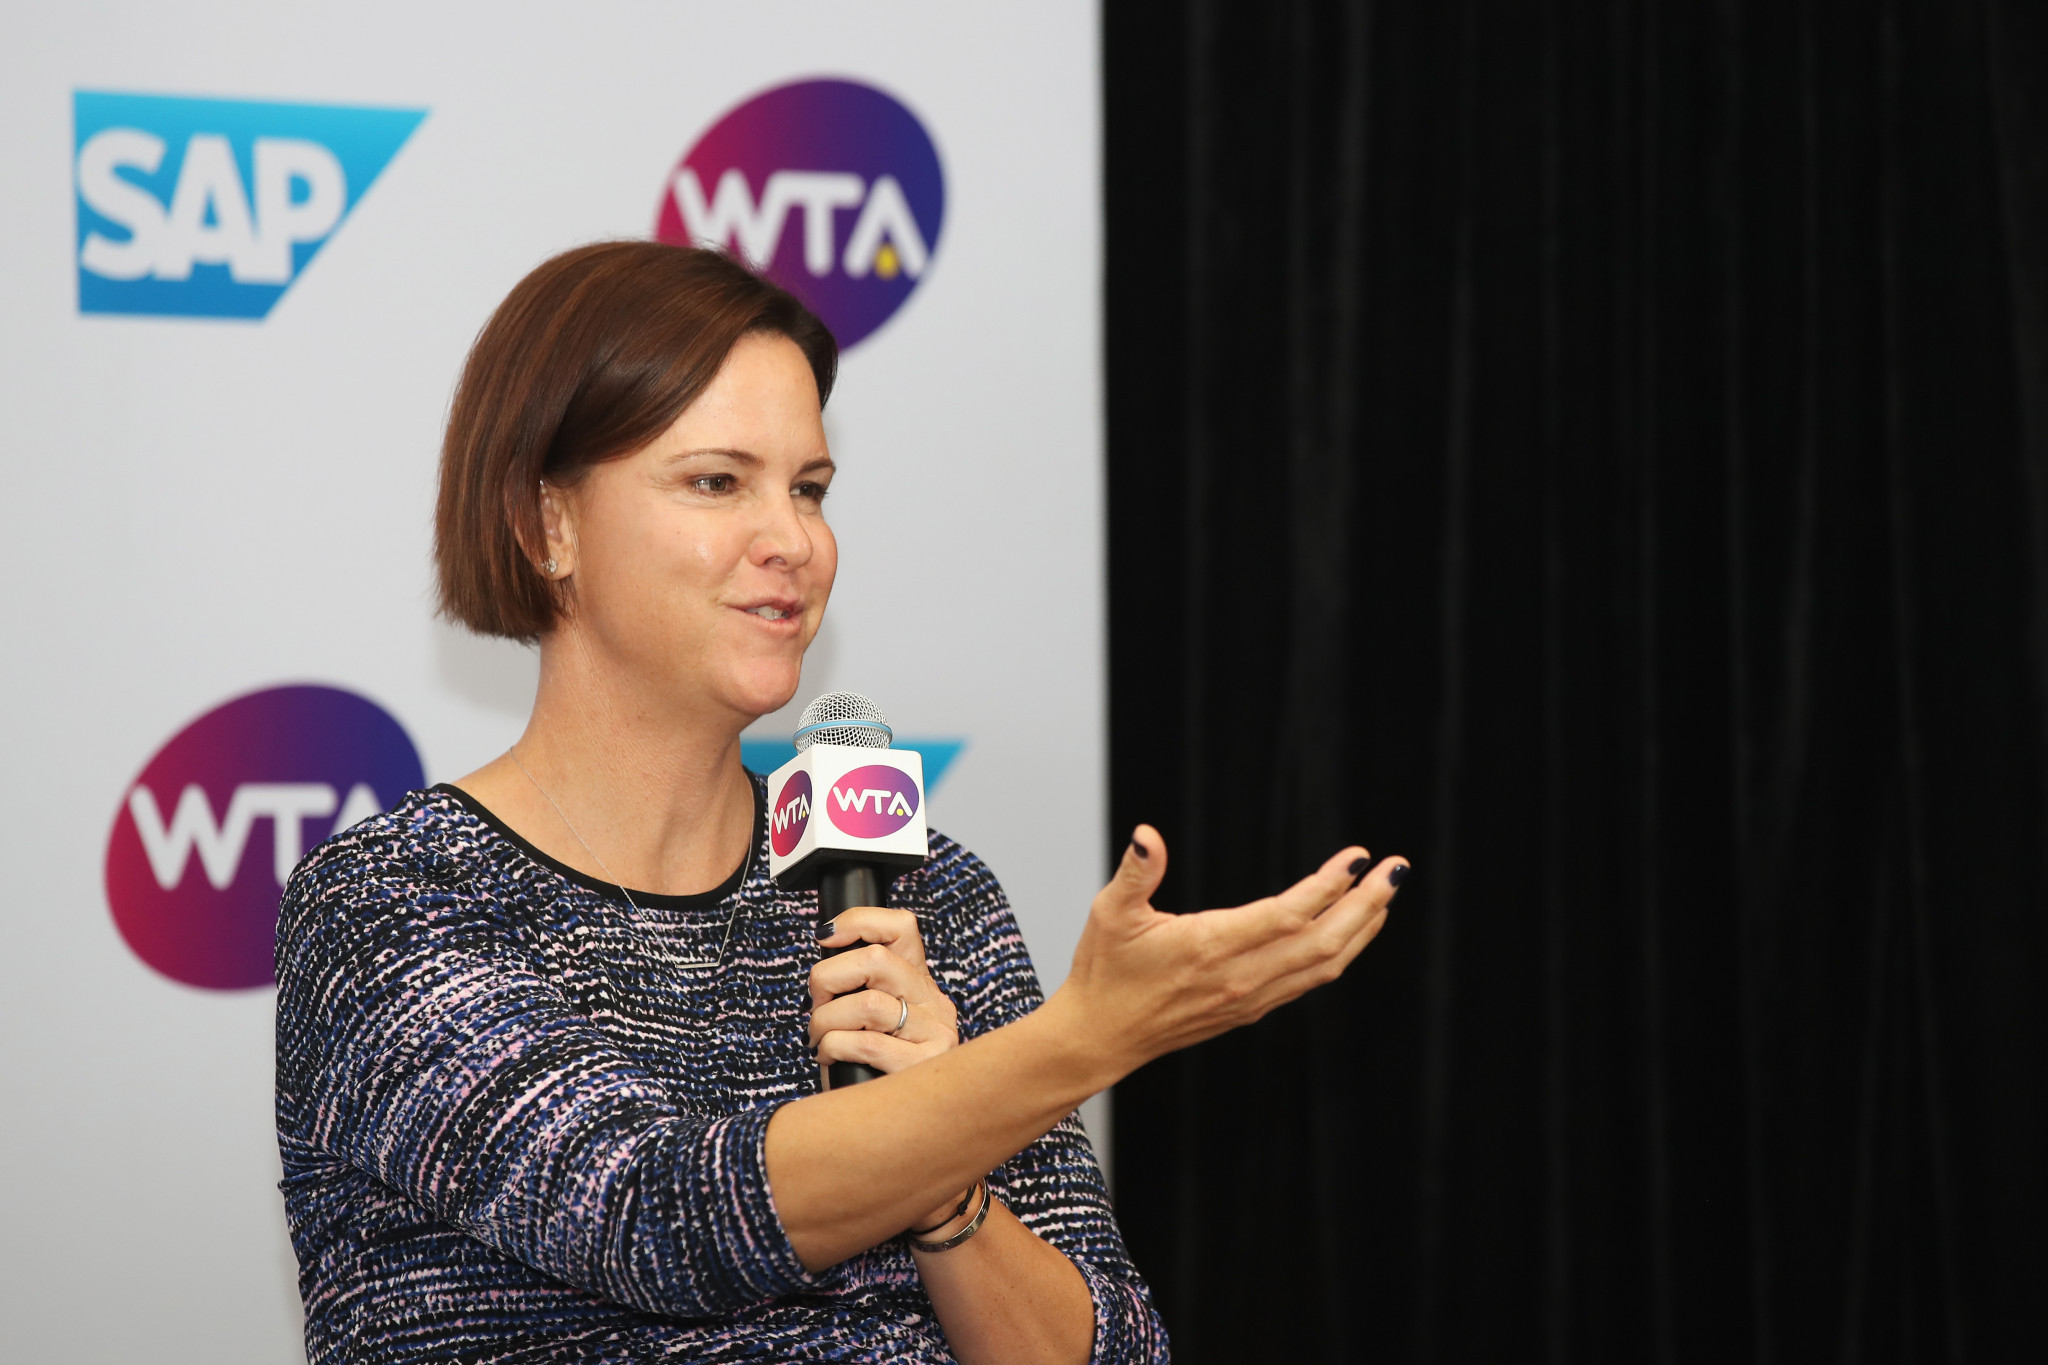 American Lindsay Davenport, who won three of tennis' four Grand Slams, will be profiled in a later episode ©Getty Images